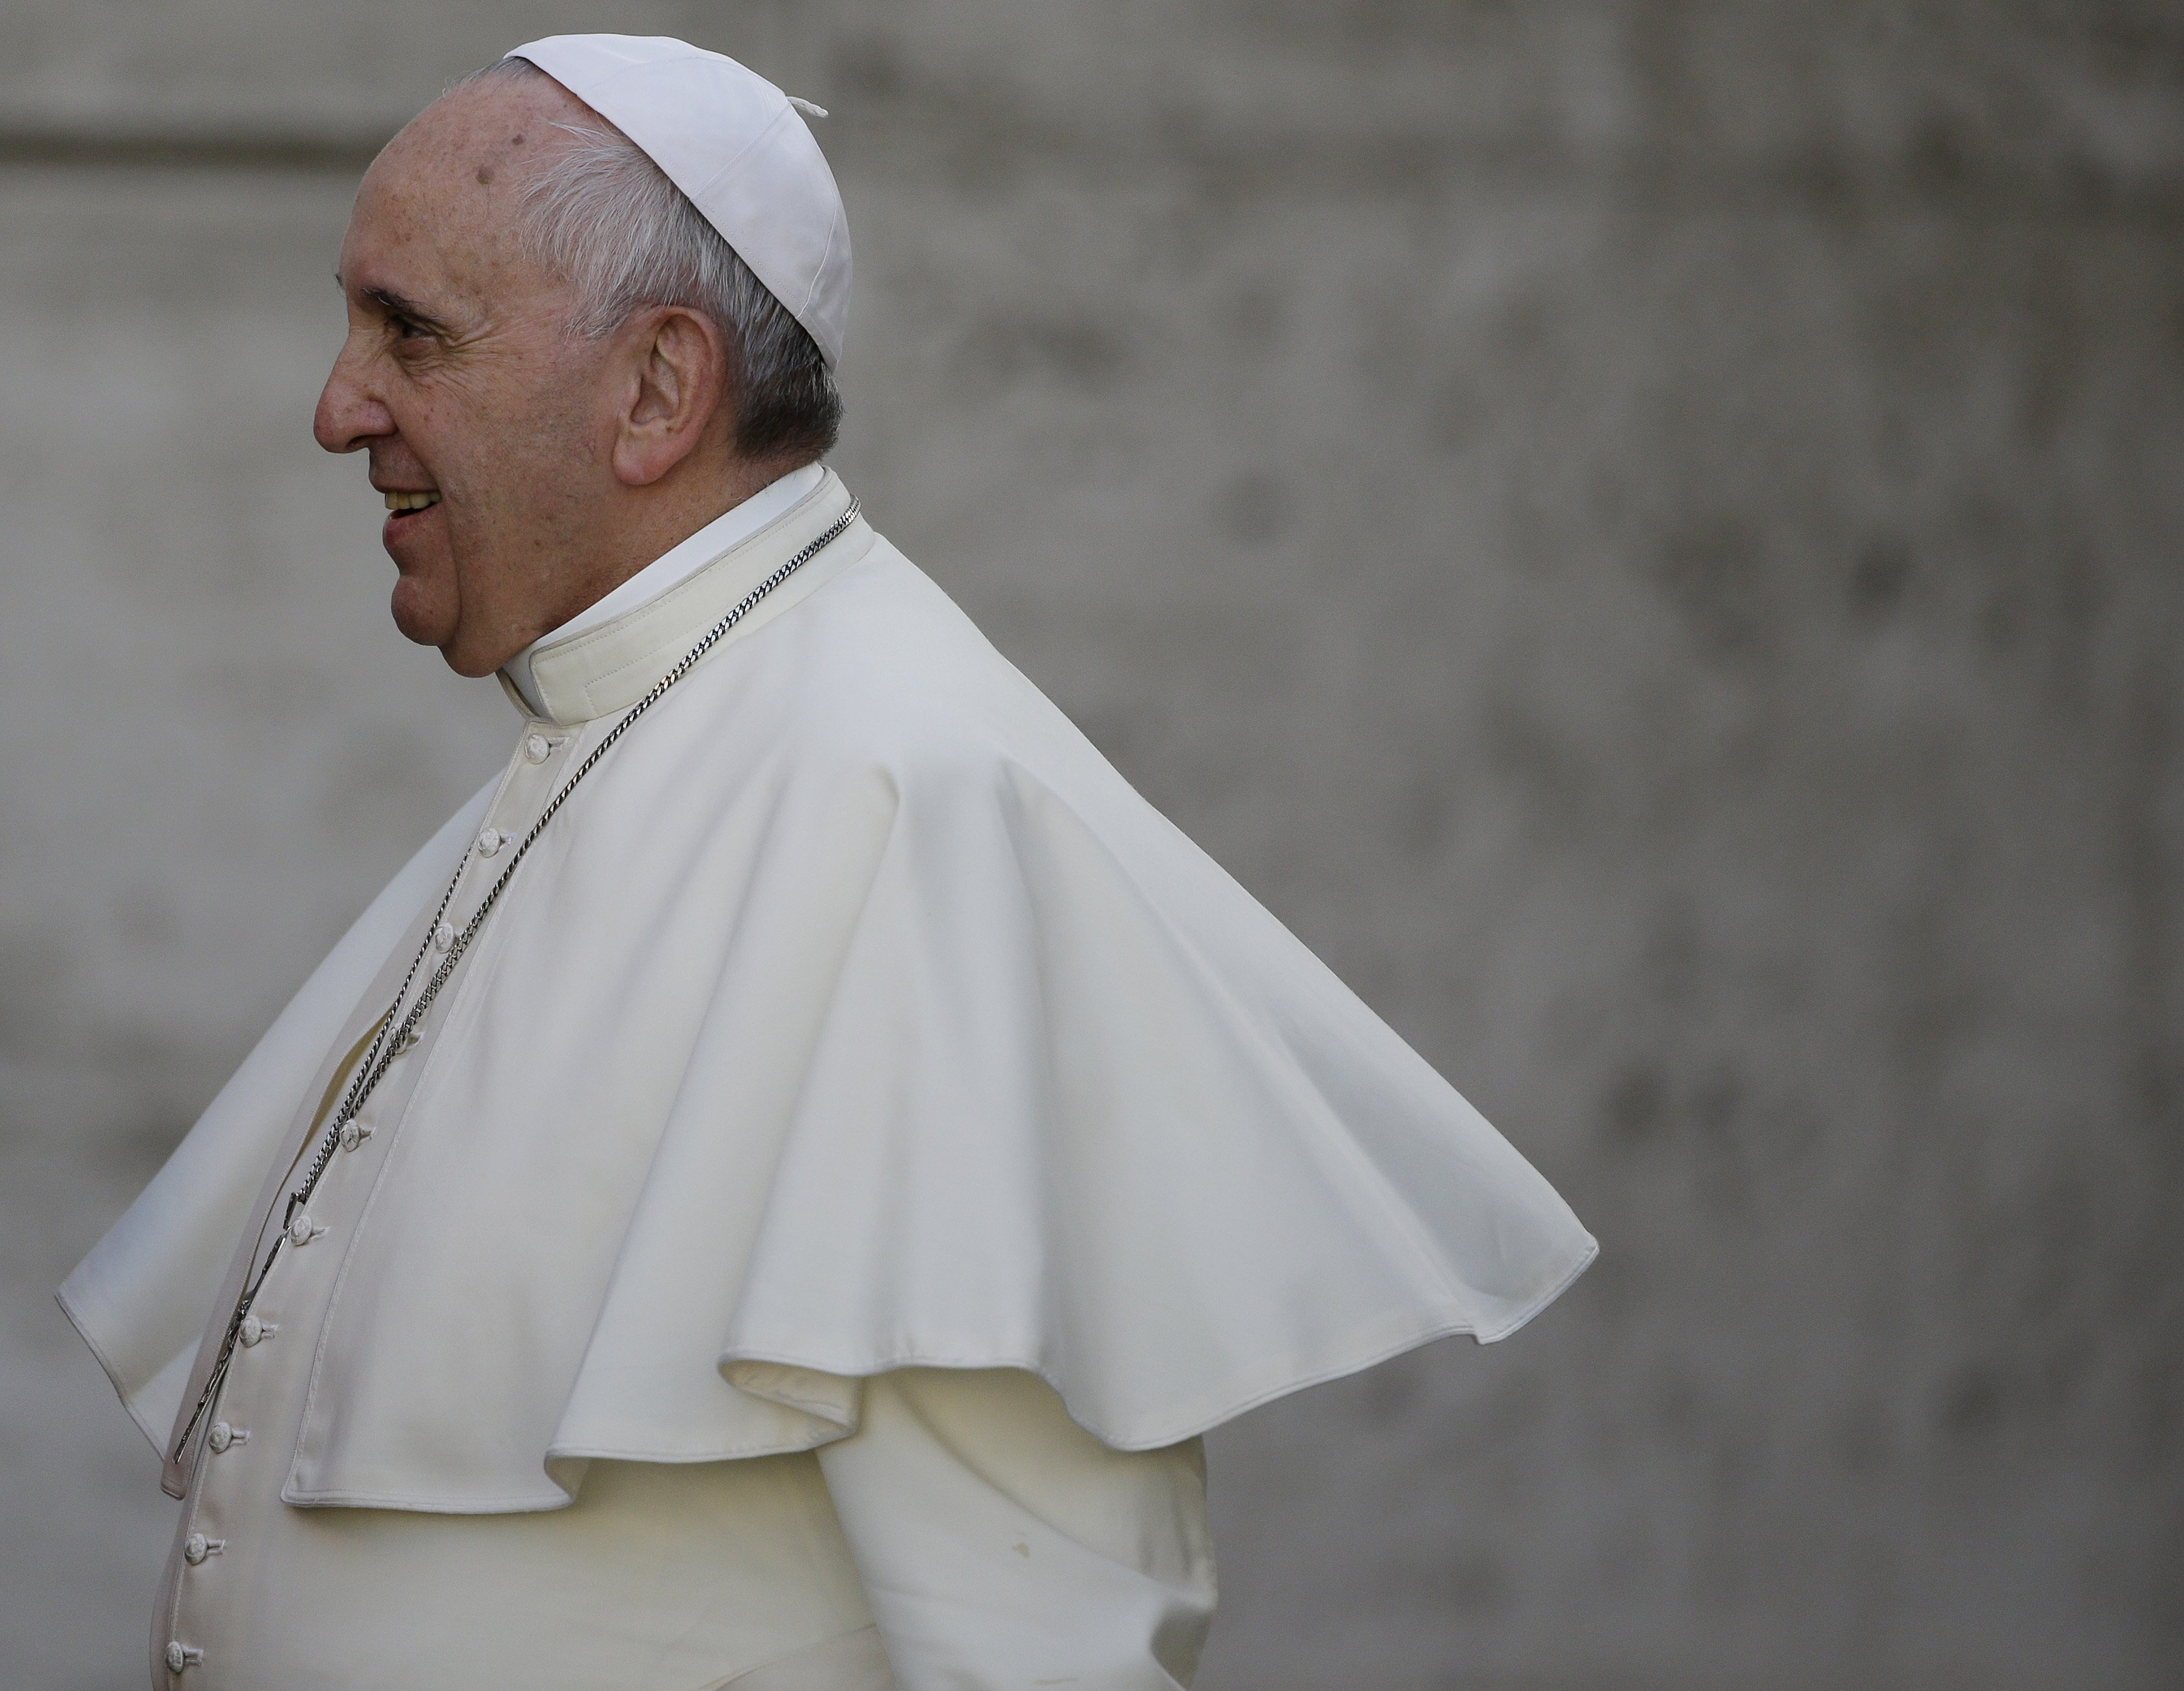 Pope Francis arrives for an afternoon session of a two-week synod on family issues at the Vatican on Oct. 9, 2014. a